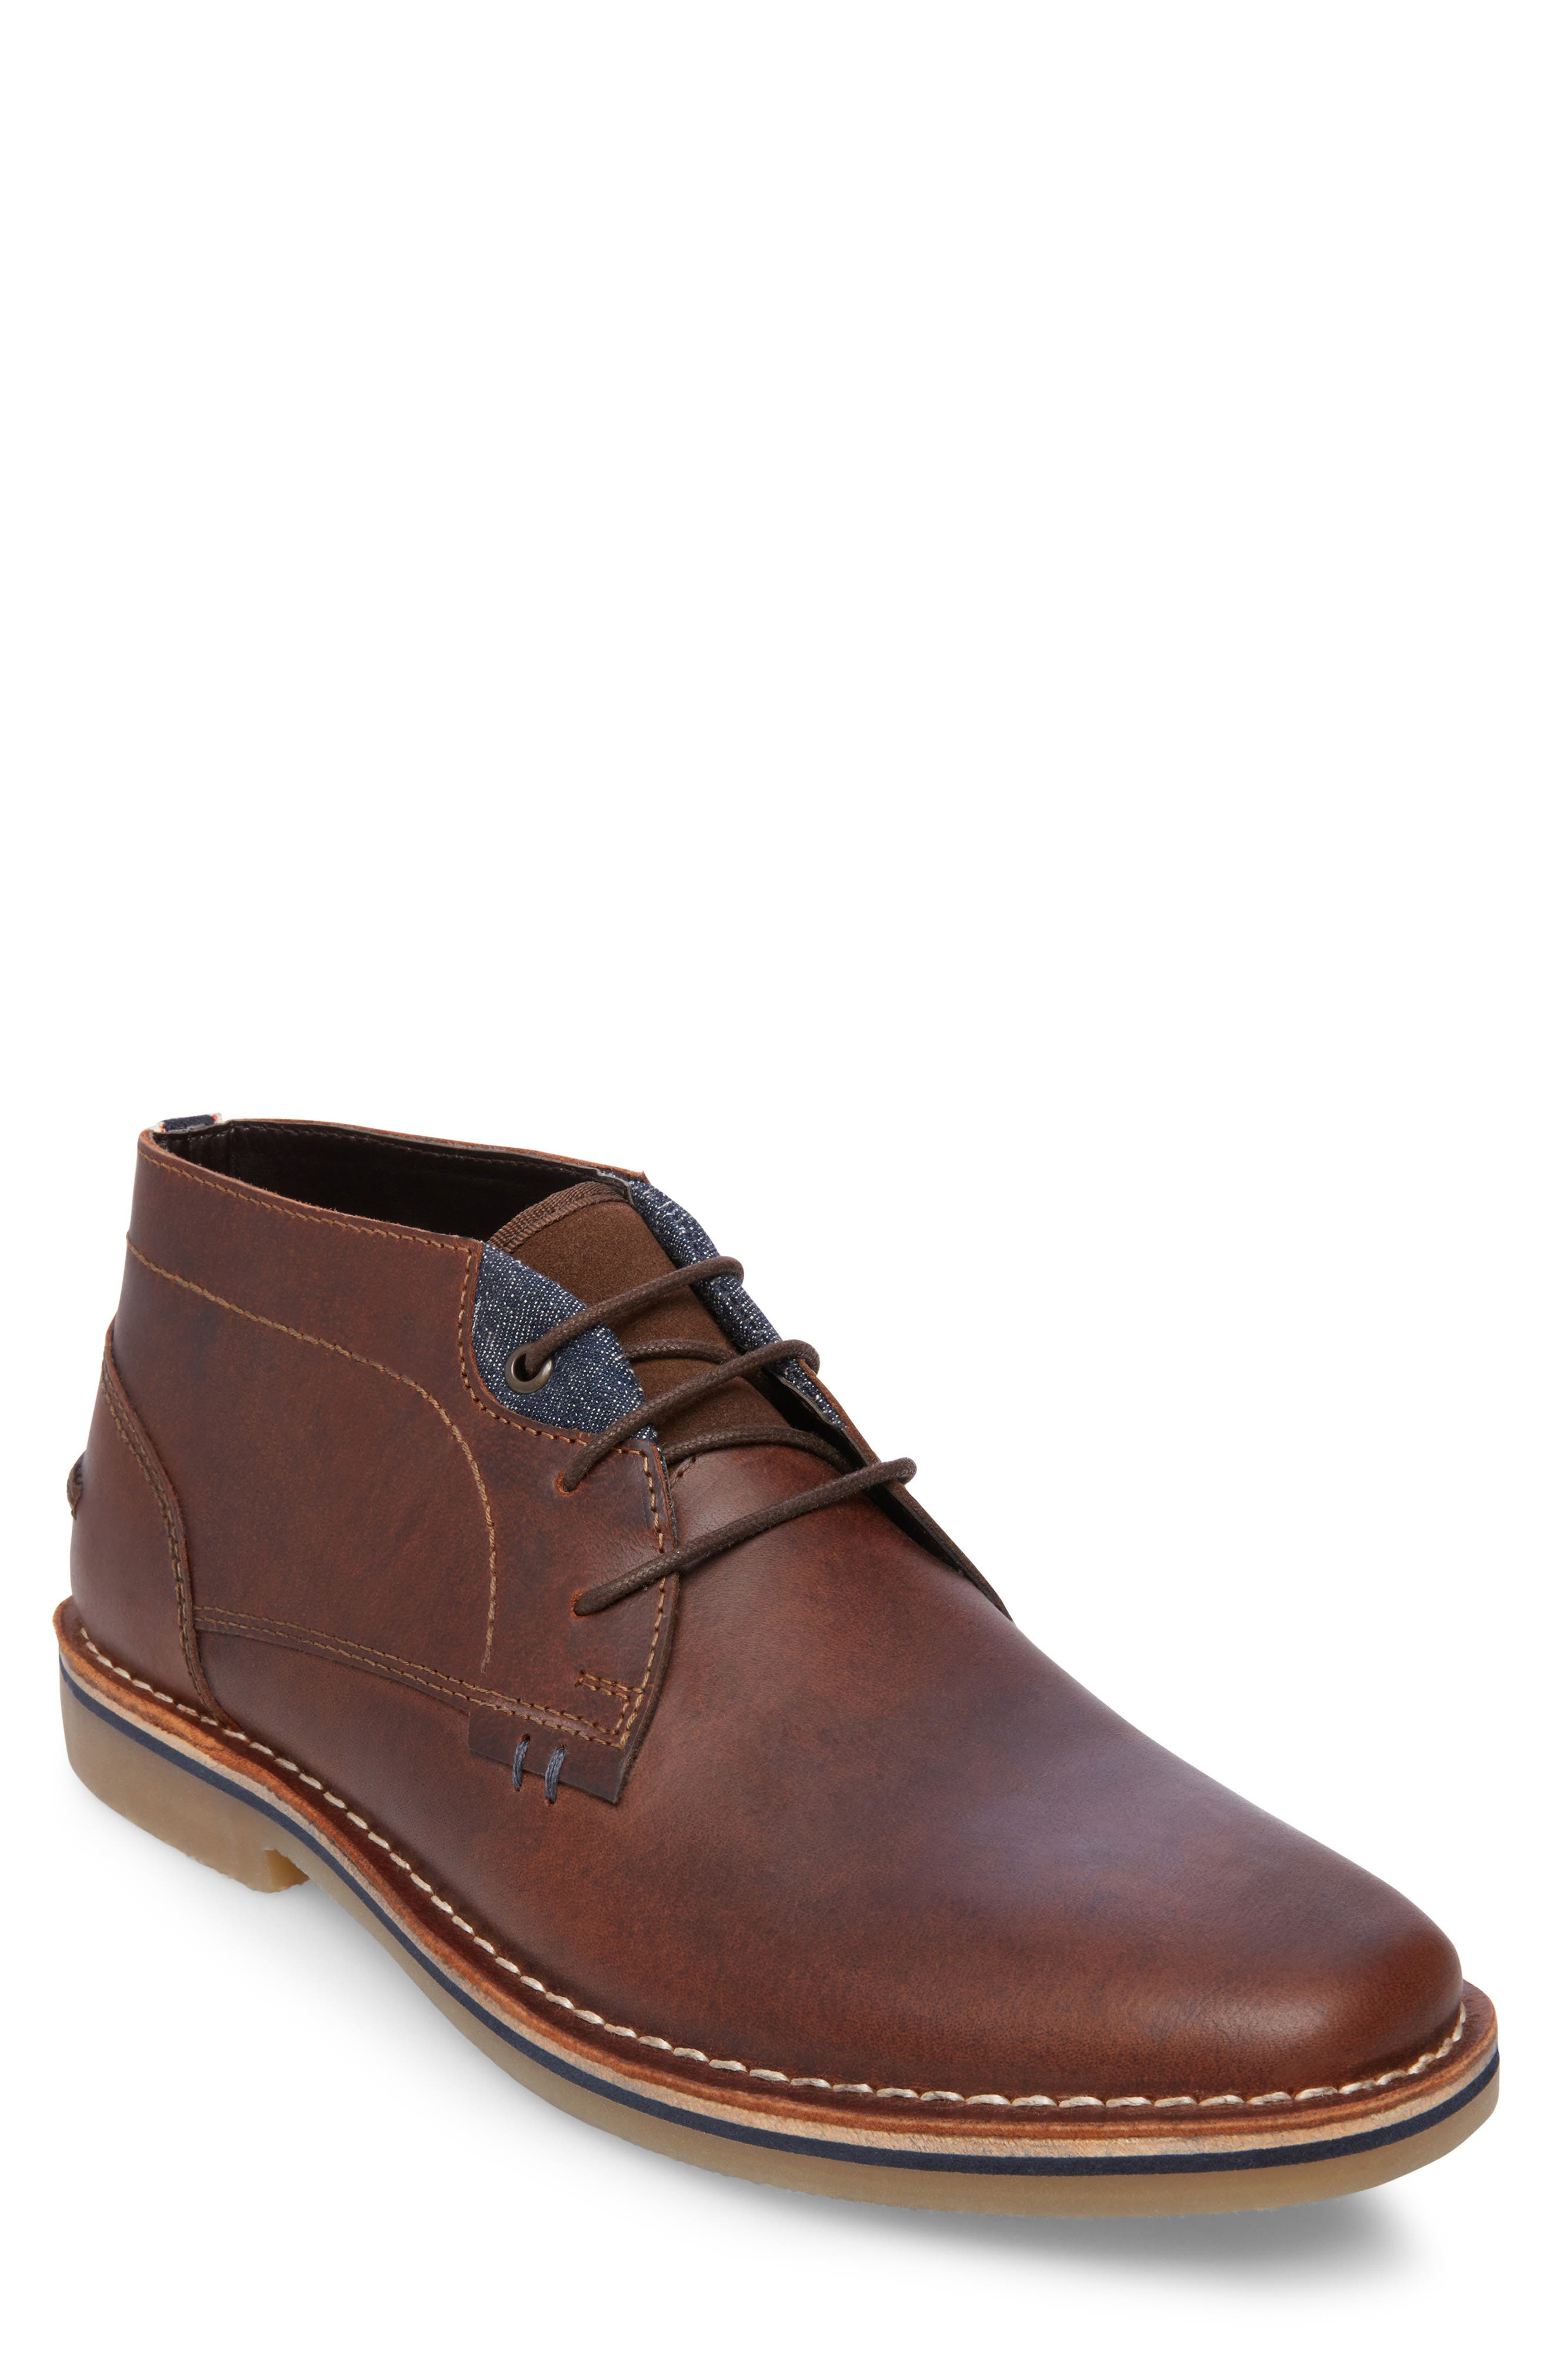 Steve Madden Hinton Chukka Boot, Brown